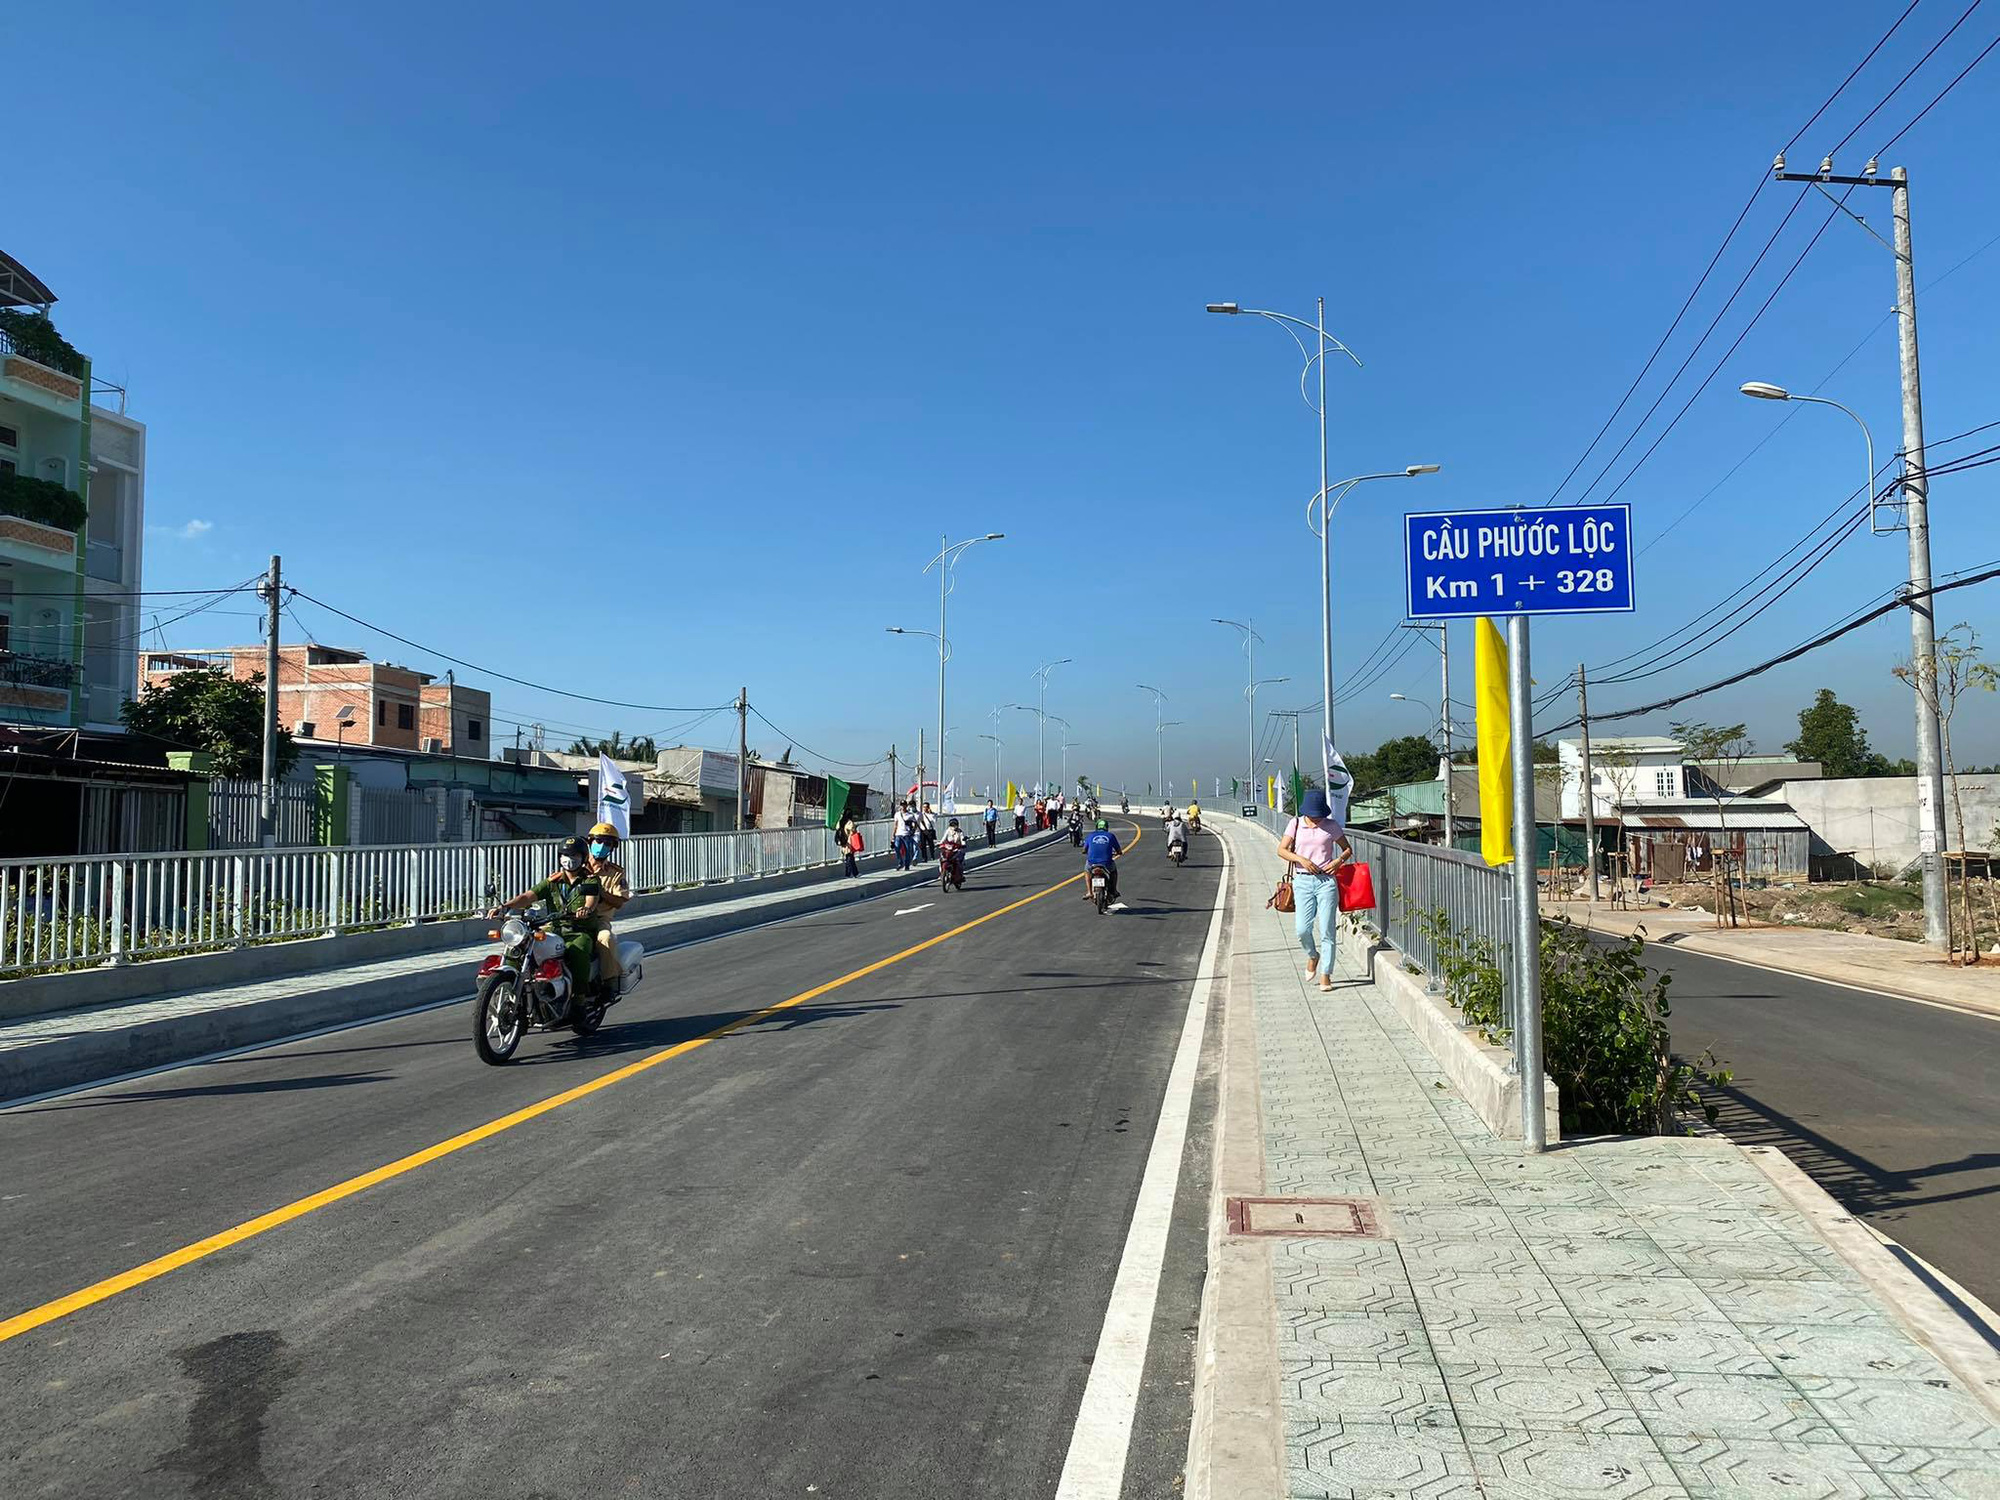 $17mn bridge inaugurated following 8-year-long construction on Ho Chi Minh City outskirts